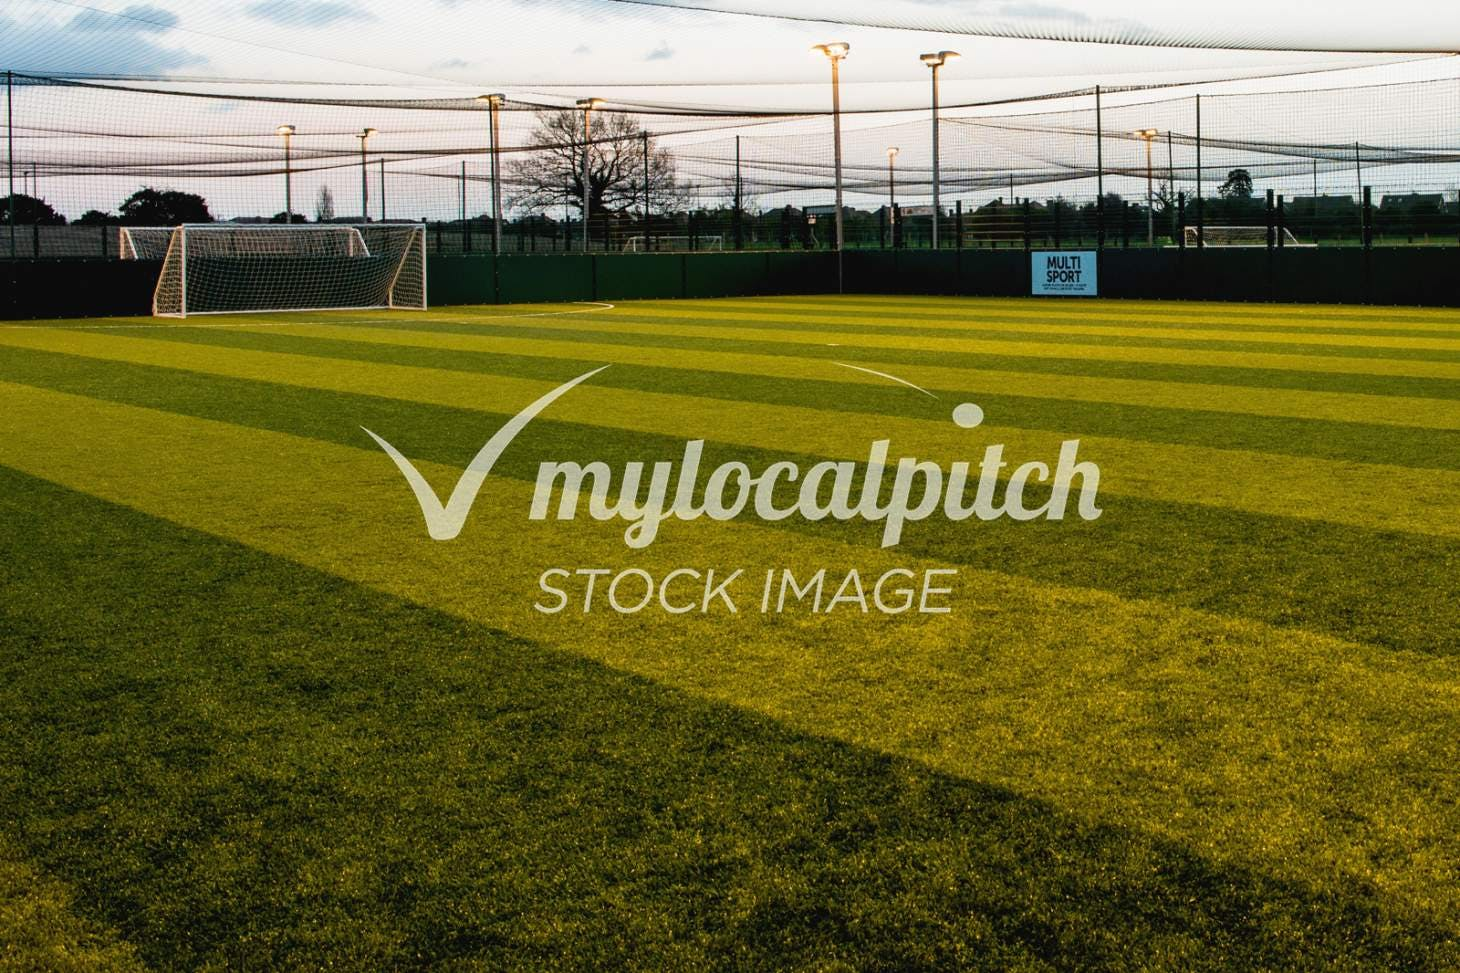 Mike Doyle Centre 9 a side | 3G Astroturf football pitch